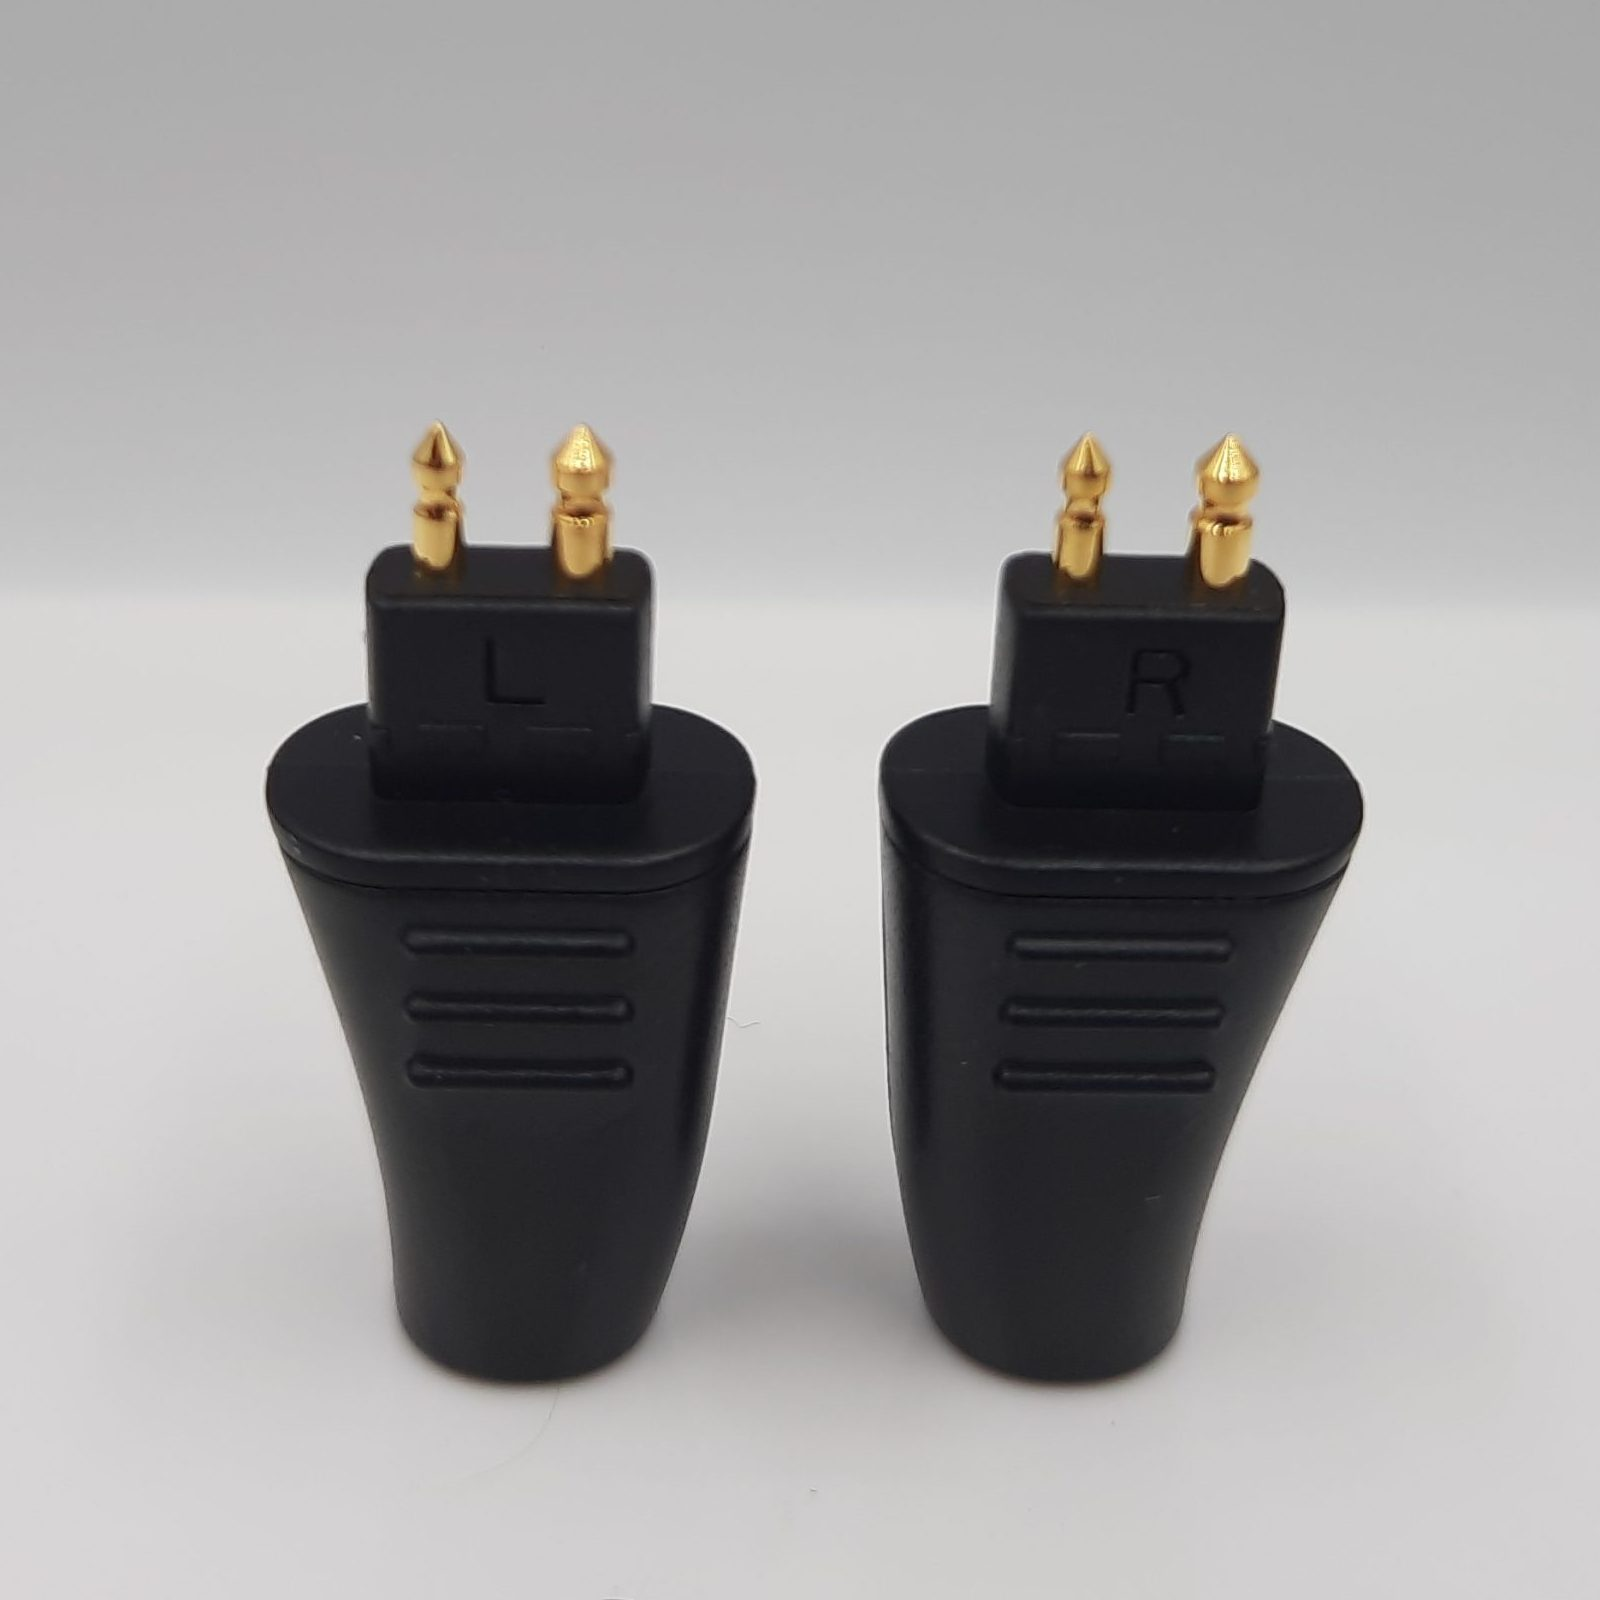 PLUSSOUND Gold Plated 2-Pin Connectors